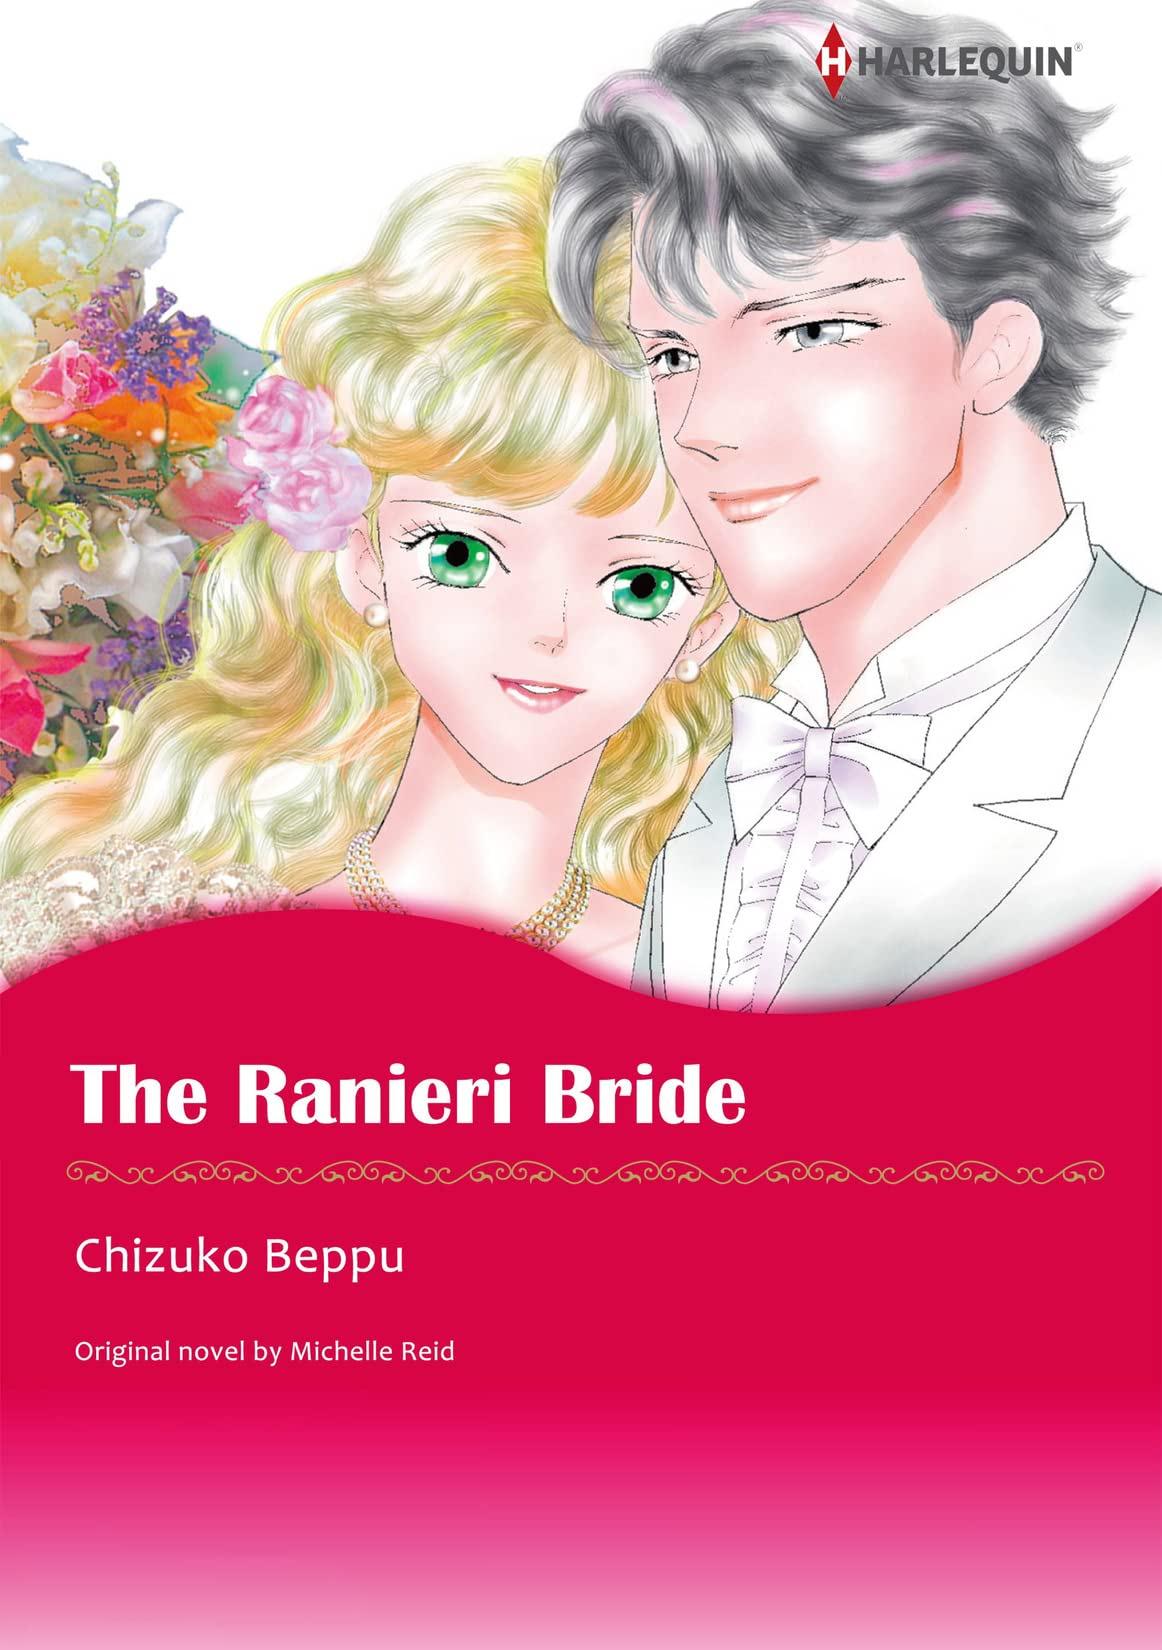 The Ranieri Bride